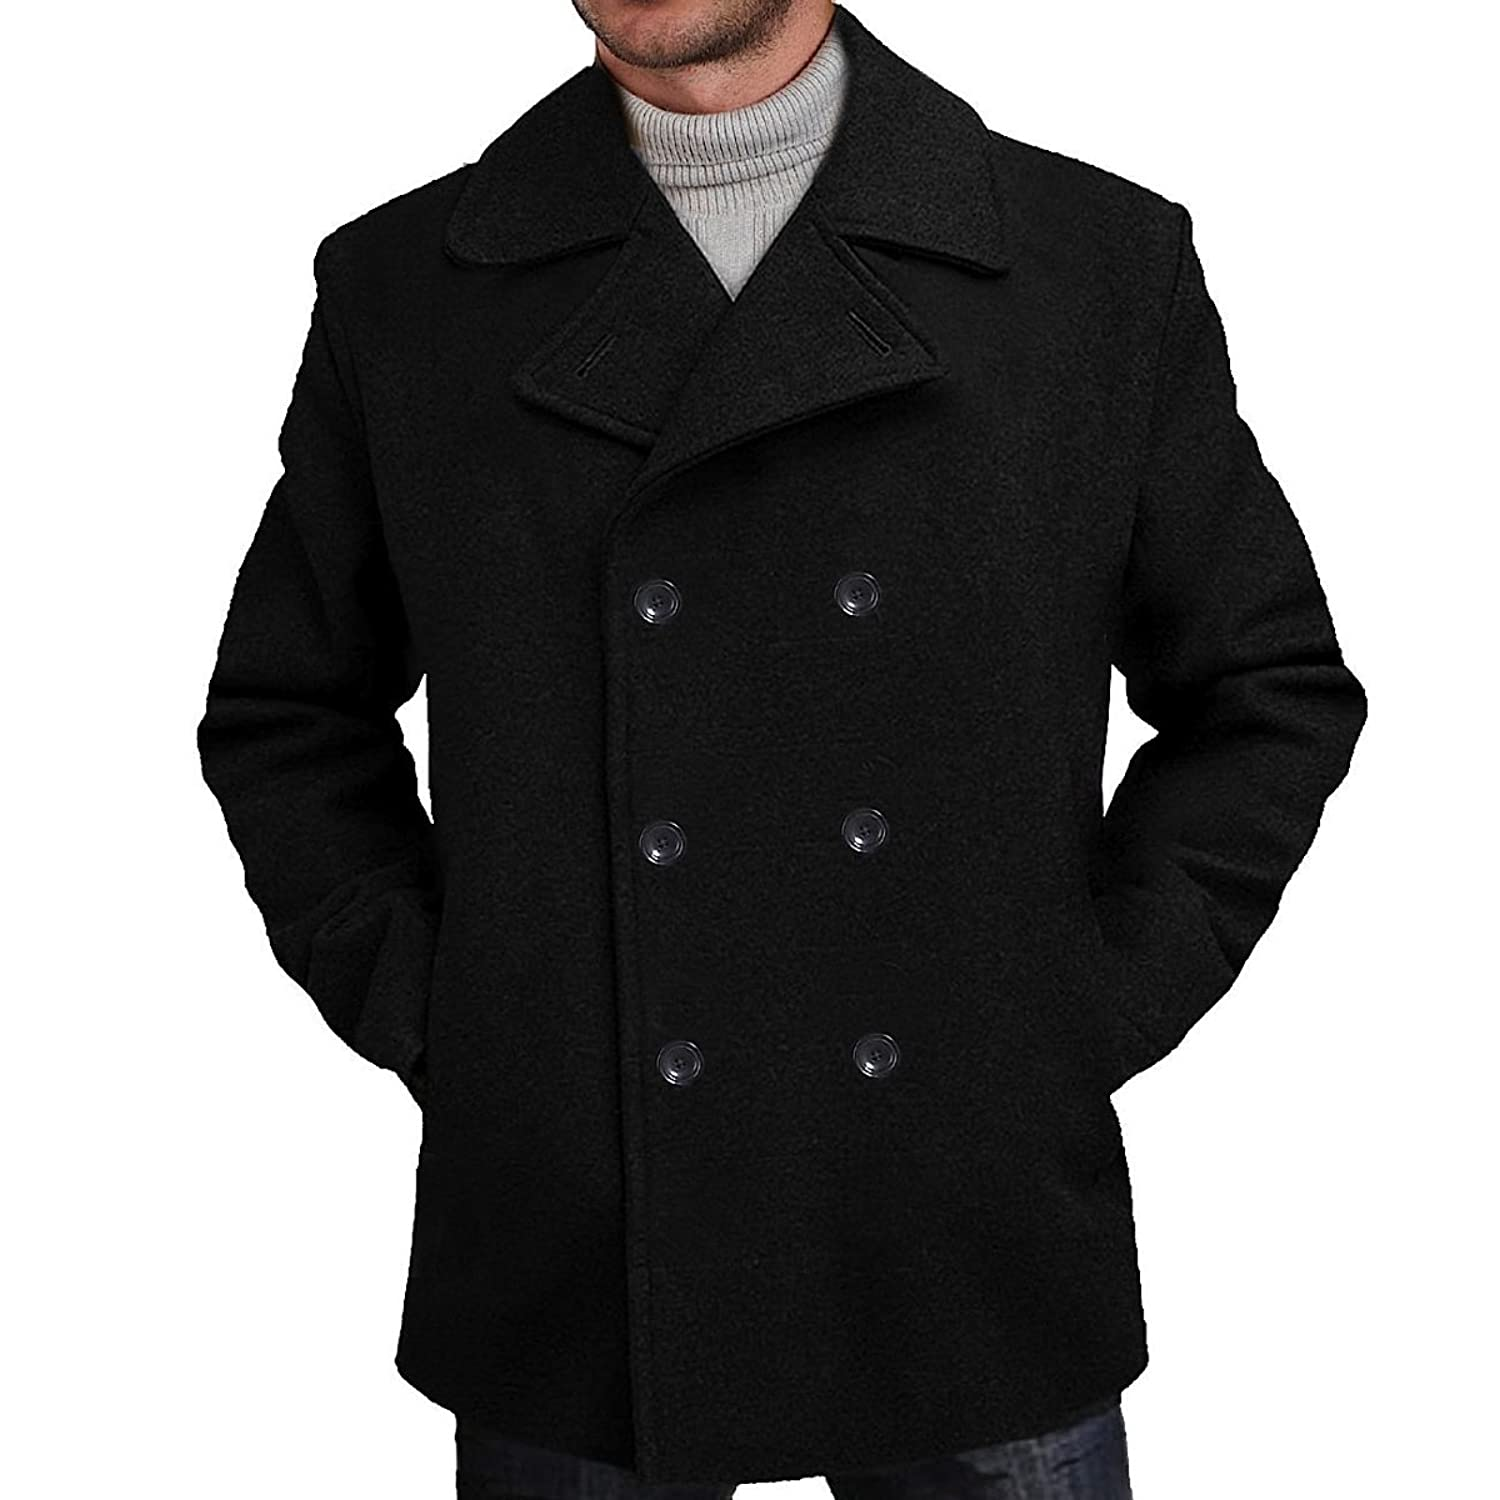 BGSD Men&39s &39Mark&39 Classic Wool Blend Pea Coat at Amazon Men&39s